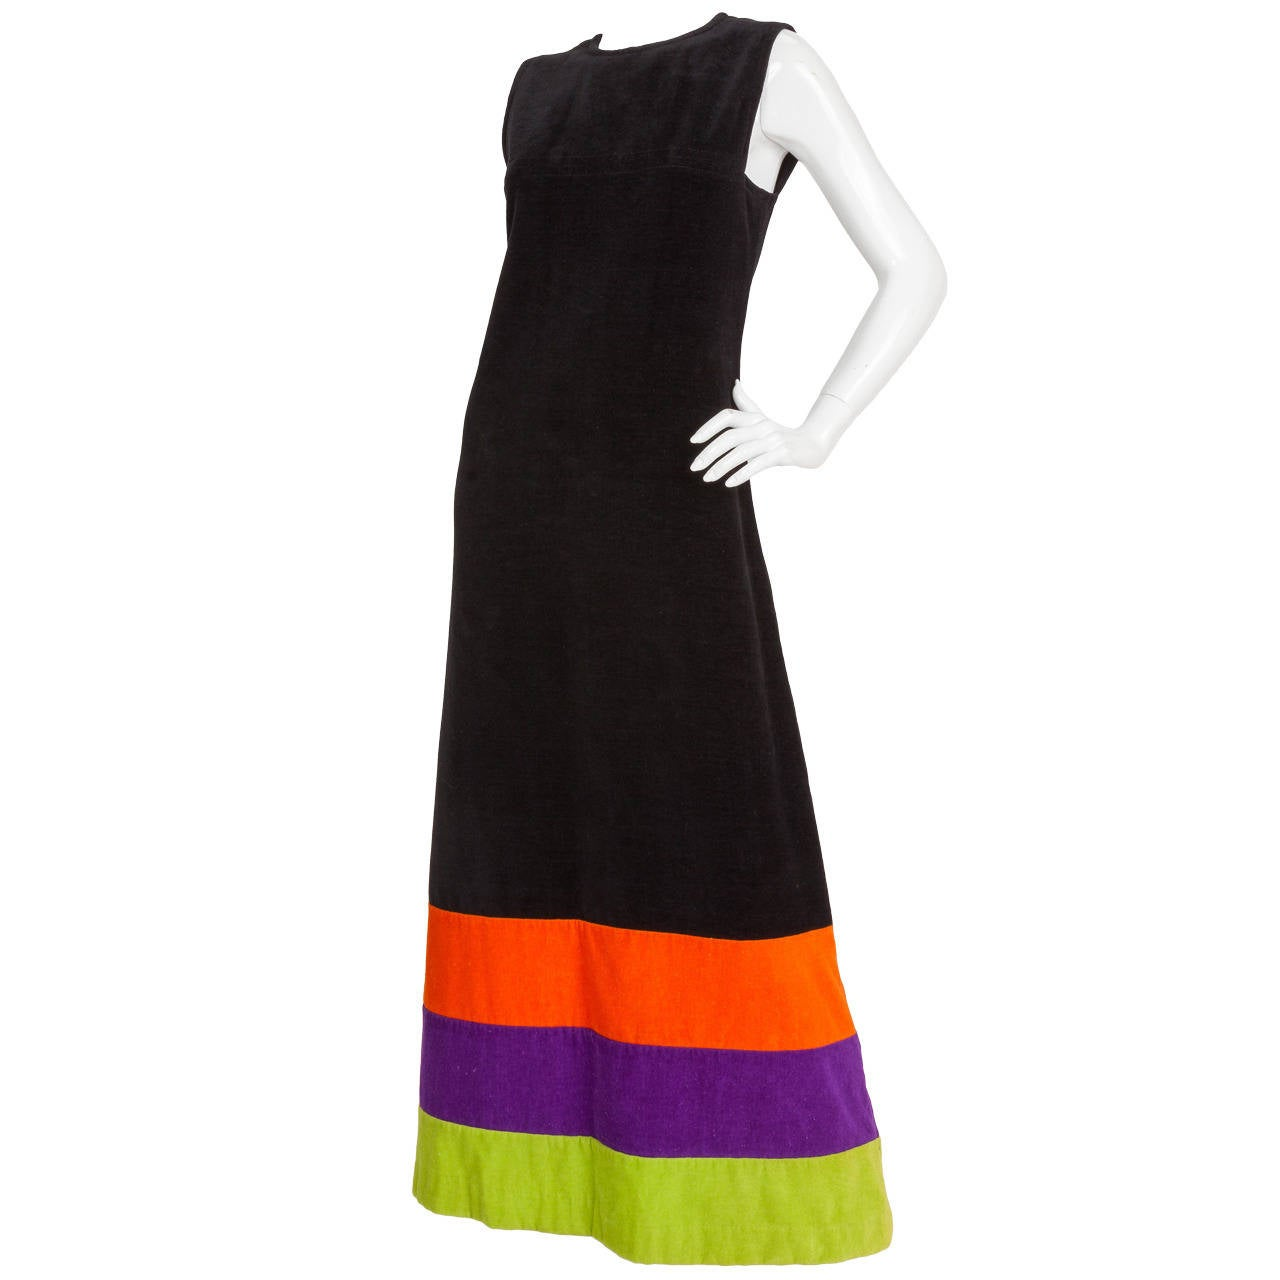 1970s Pierre Cardin Terry Cloth Maxi Dress w/Multicolored Stripes at Hem 1